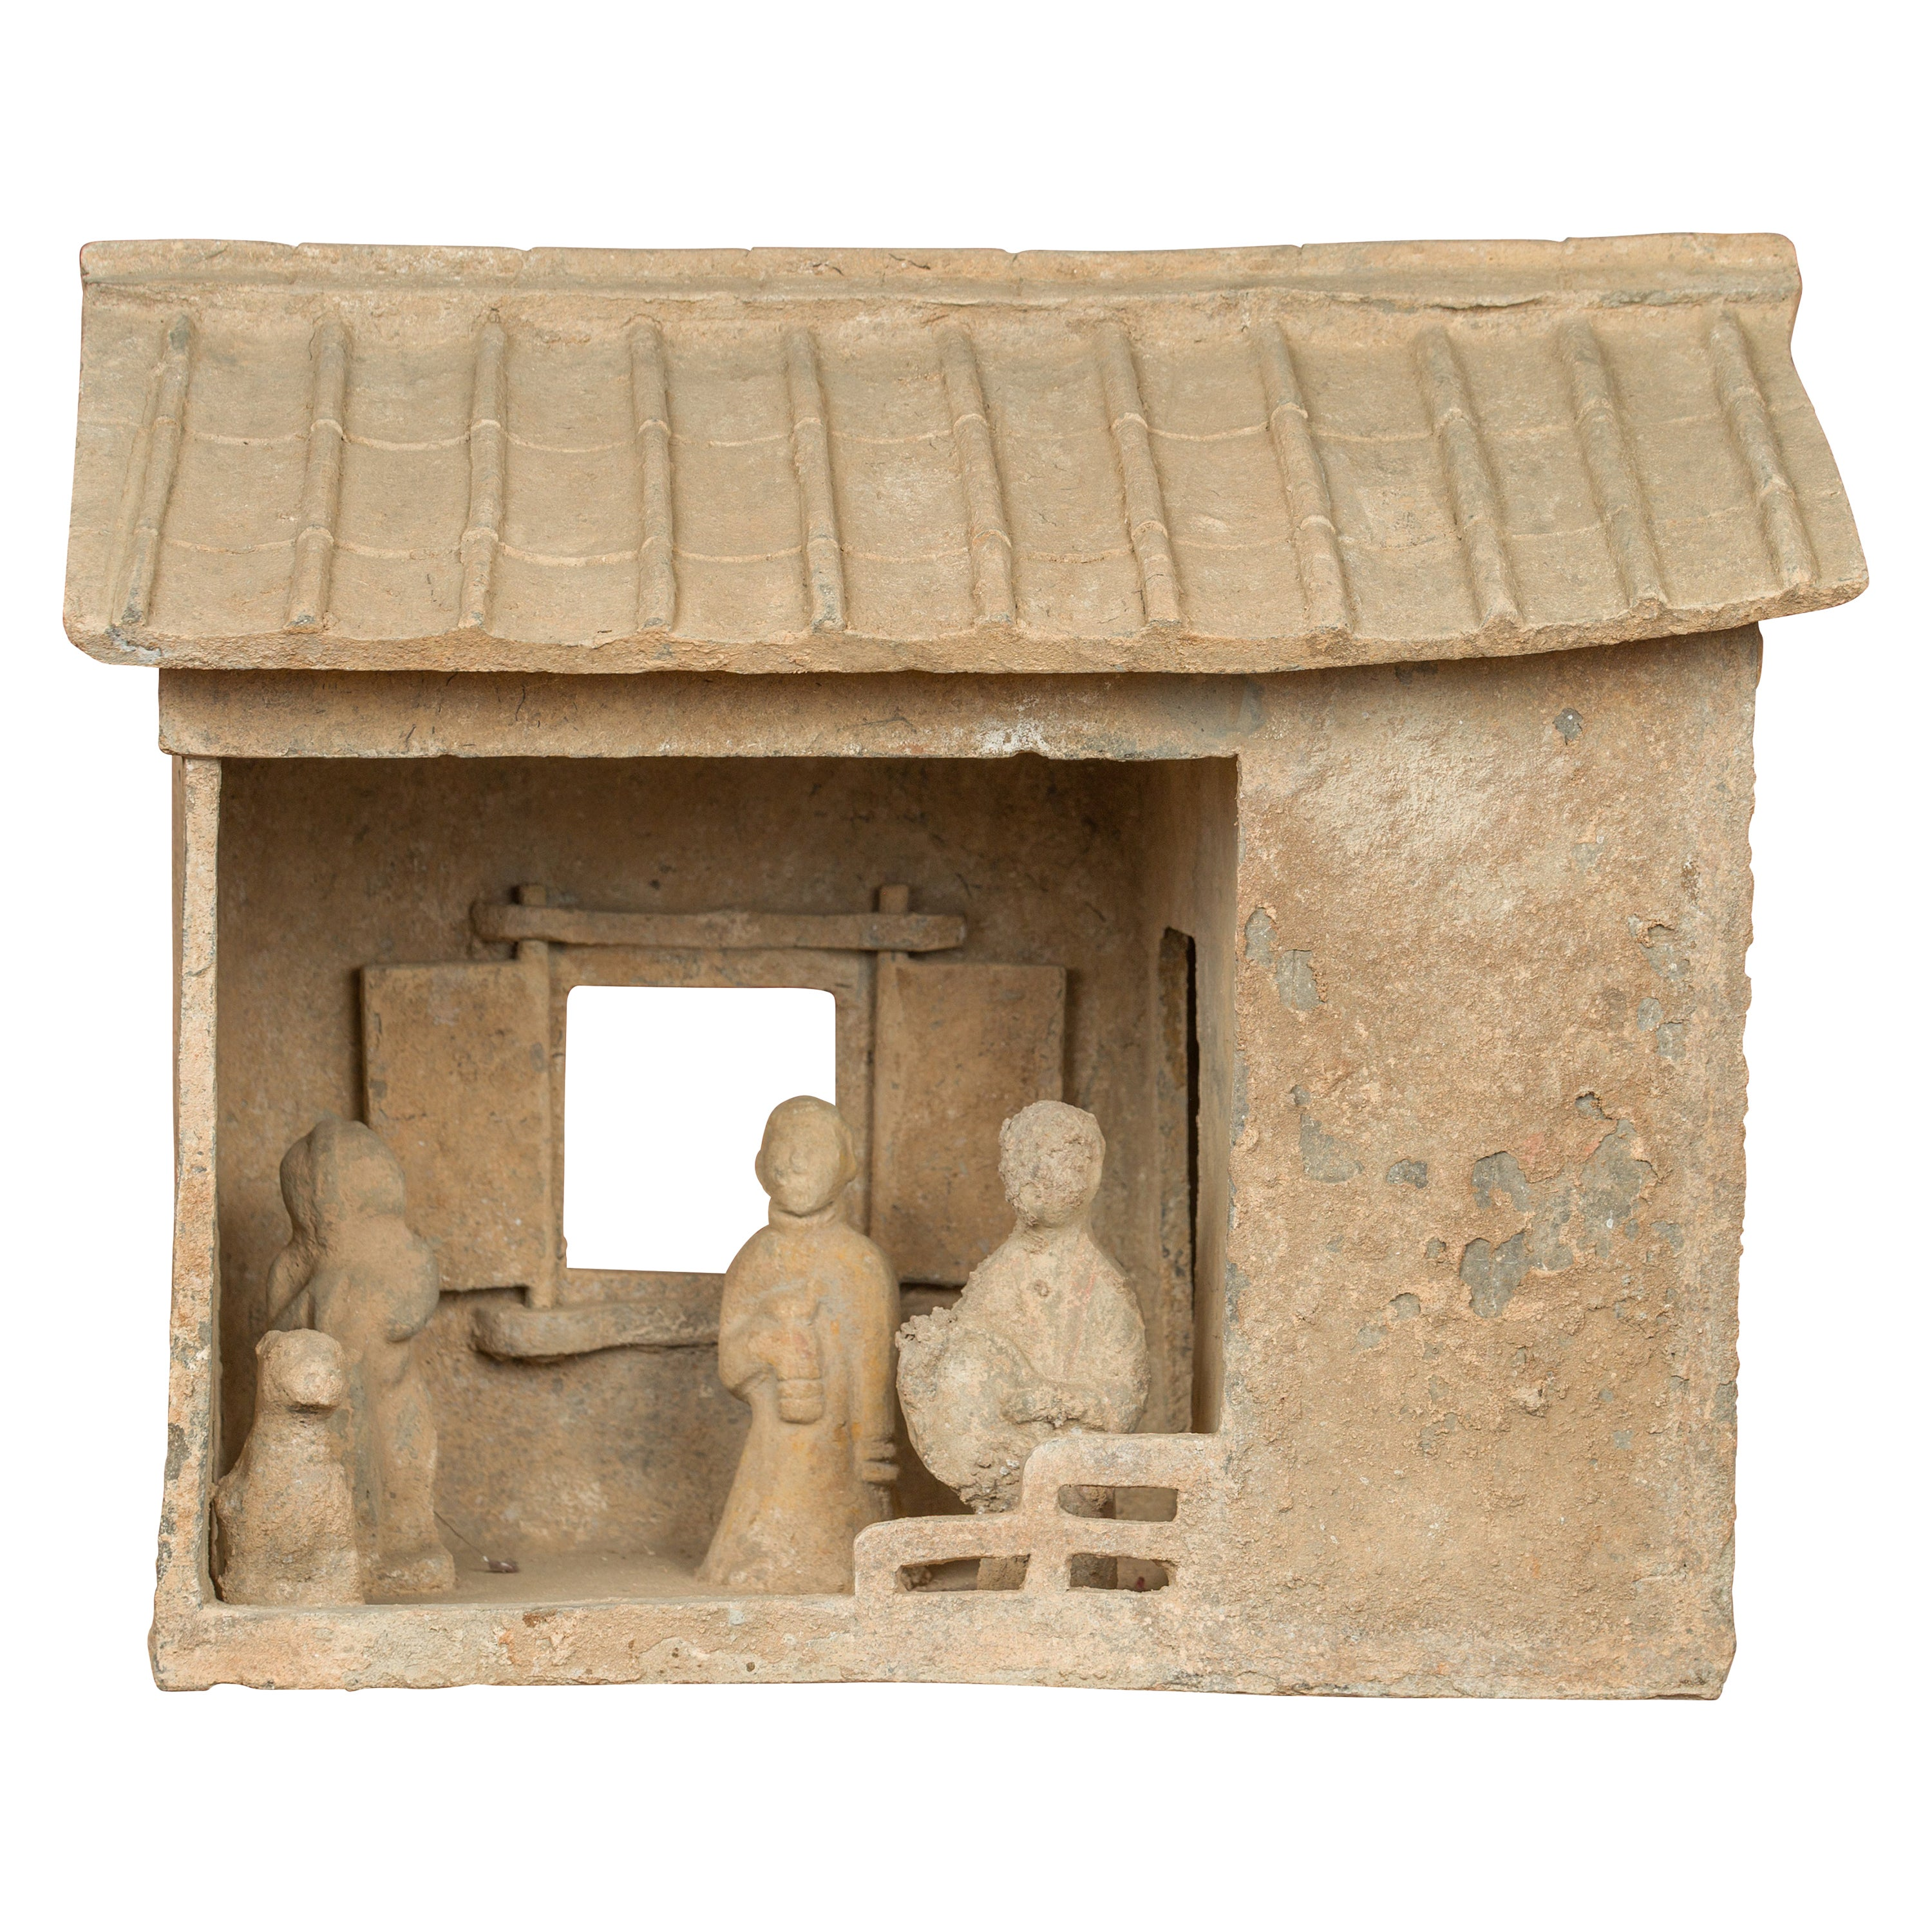 Chinese Han Dynasty Mingqi House Model with Its Inhabitants, circa 206 BC-AD 221